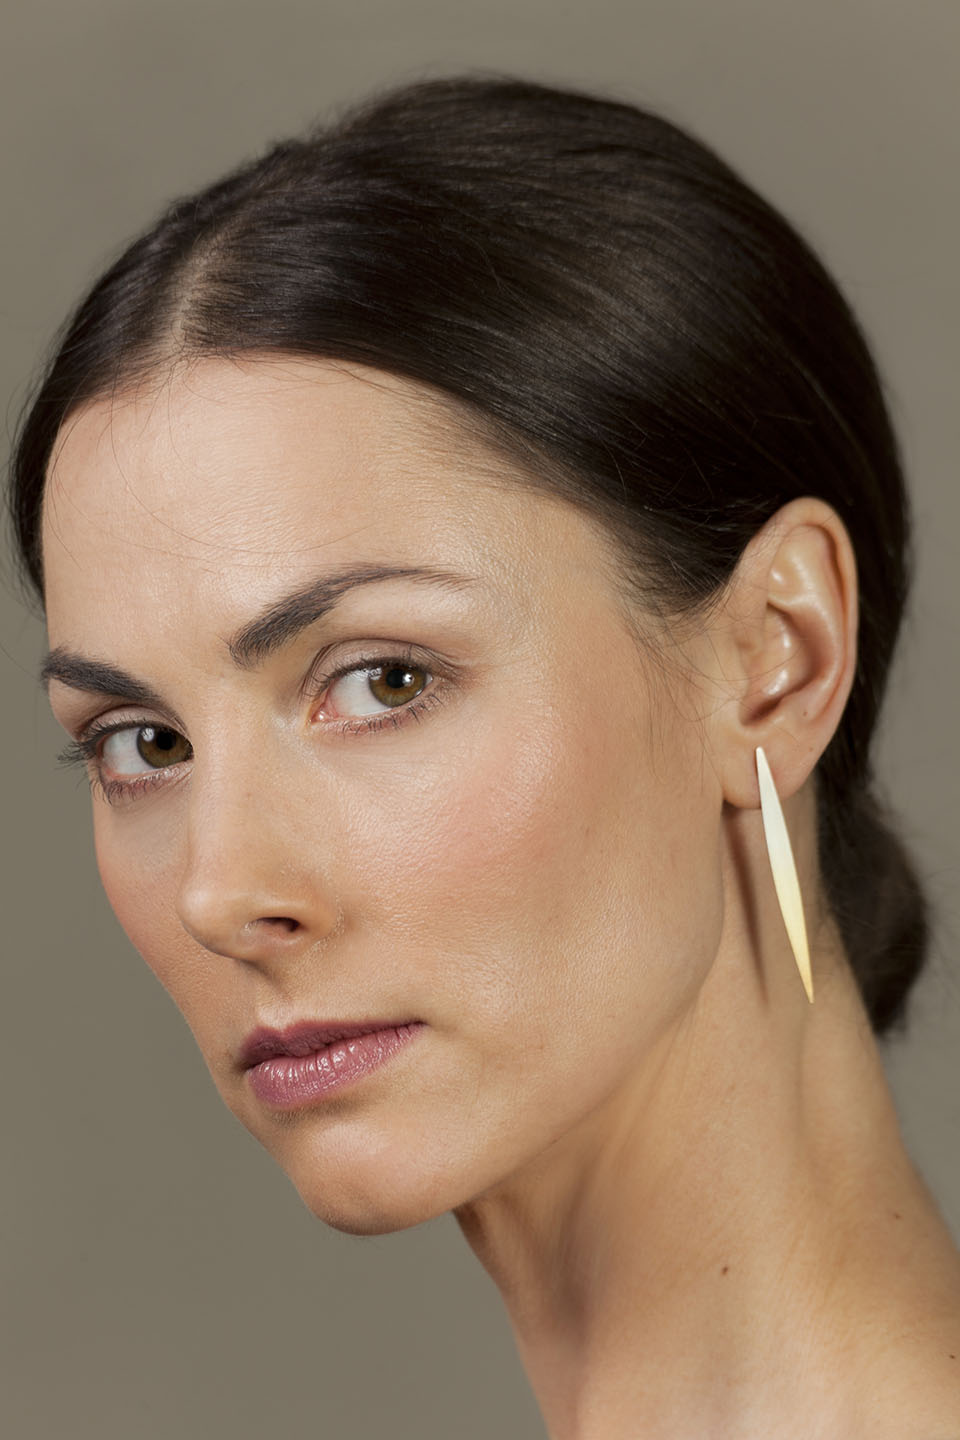 Gold-plated silver earrings from the series Lible